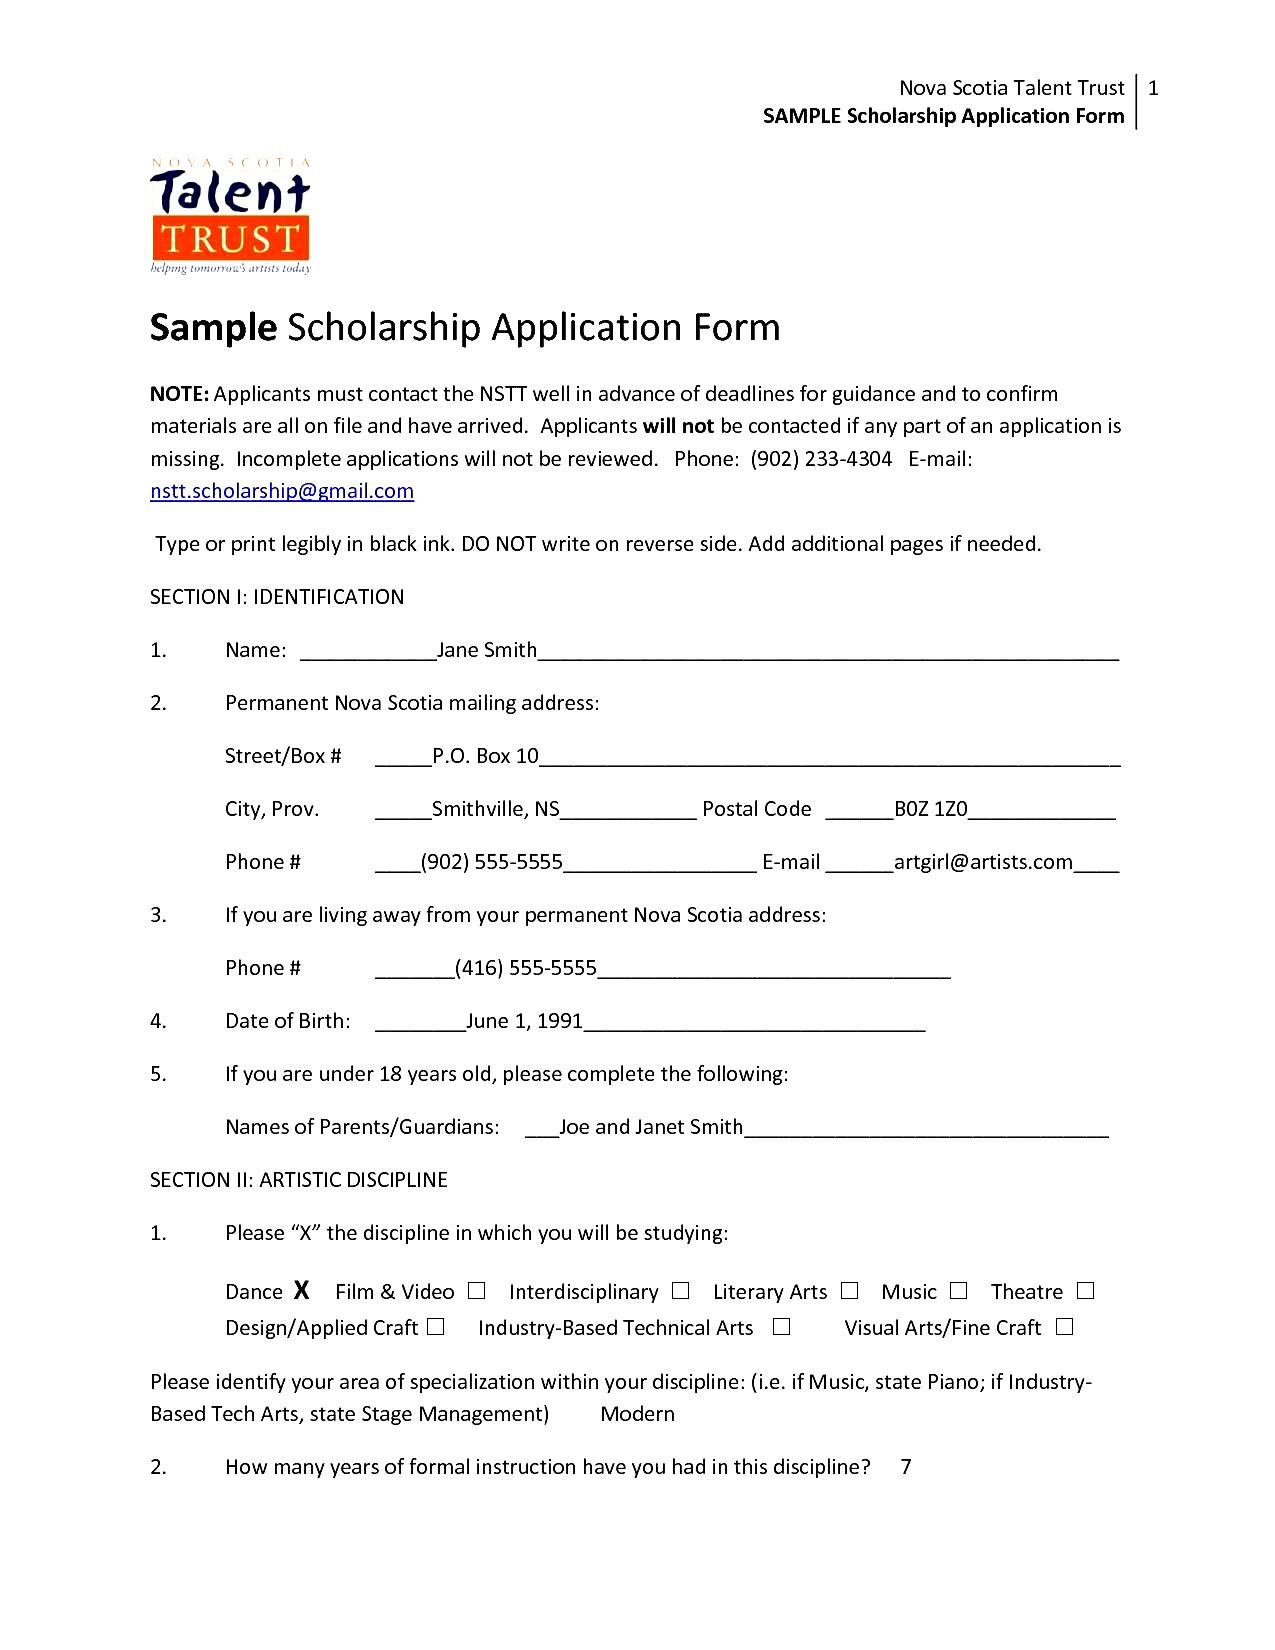 Scholarship Application Form Templates Blank Functional Besides Inside Simple Application Form Pdf